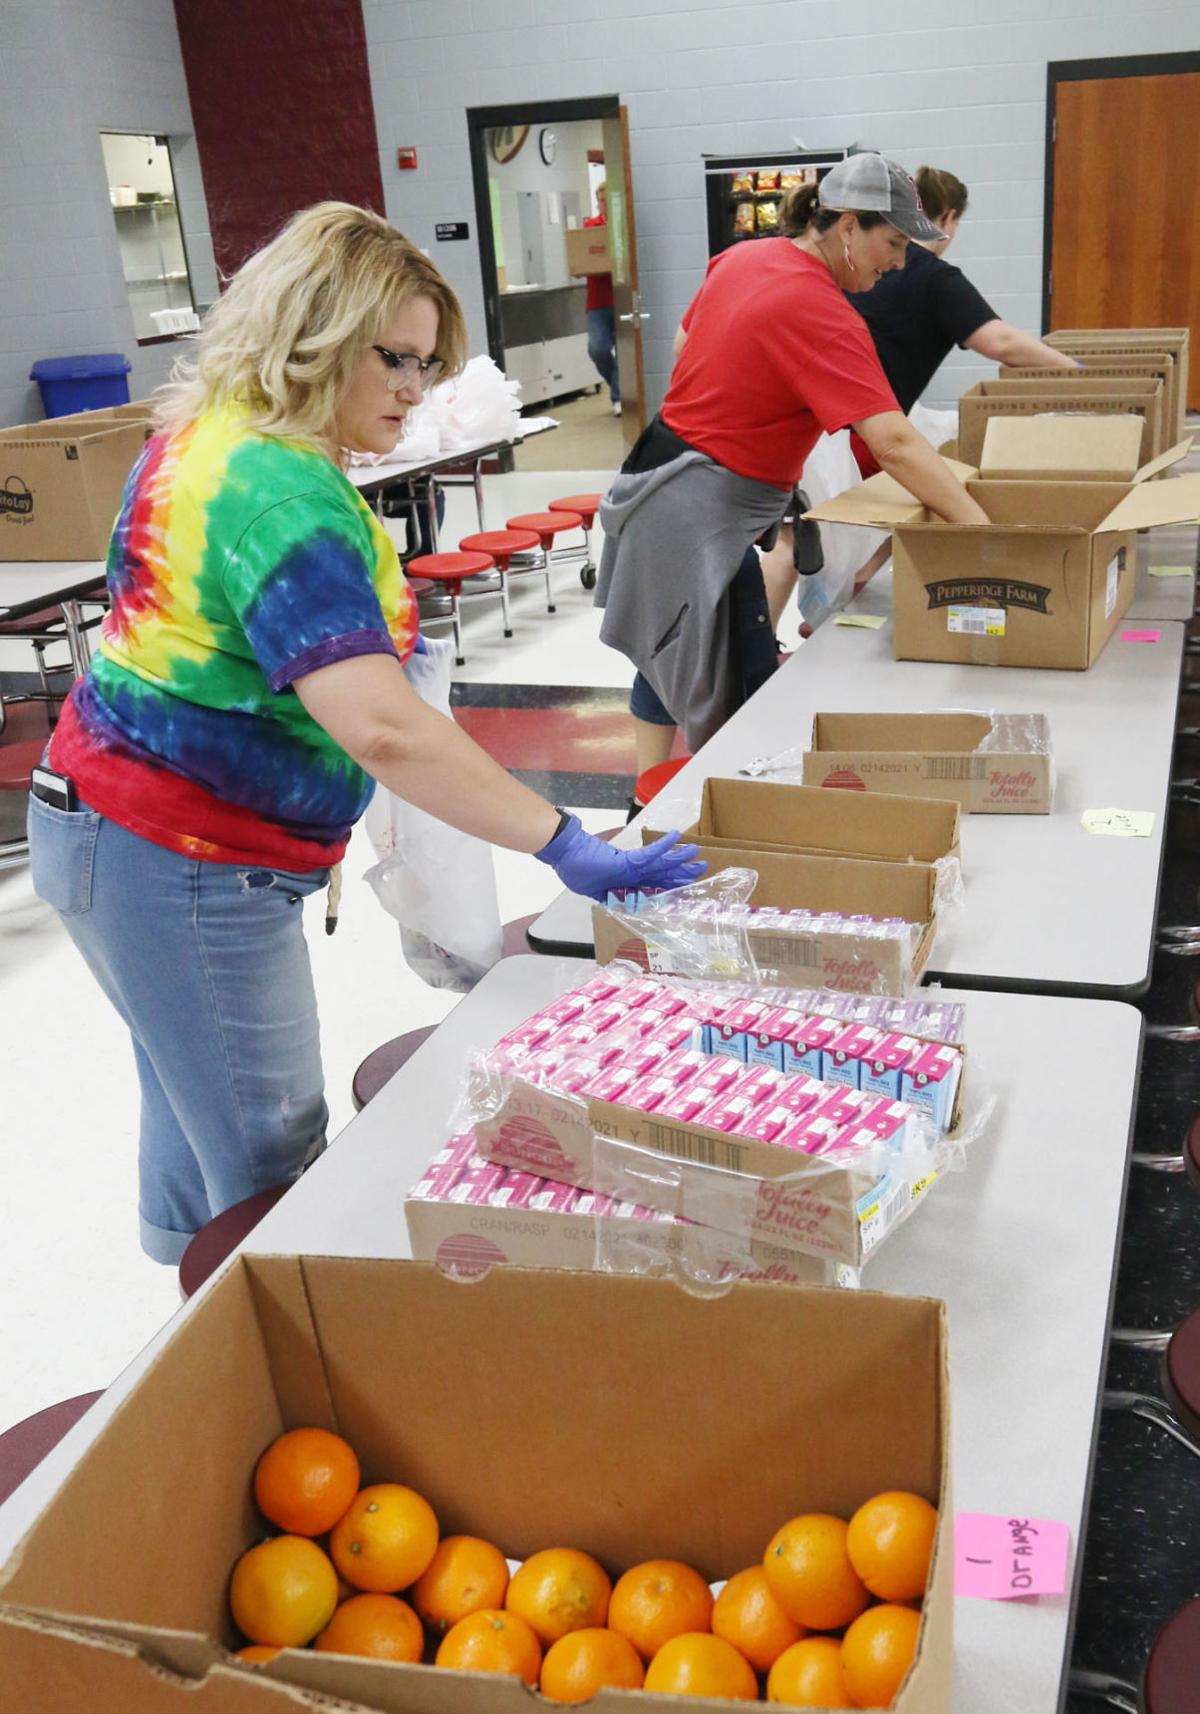 PHS feeding - packing